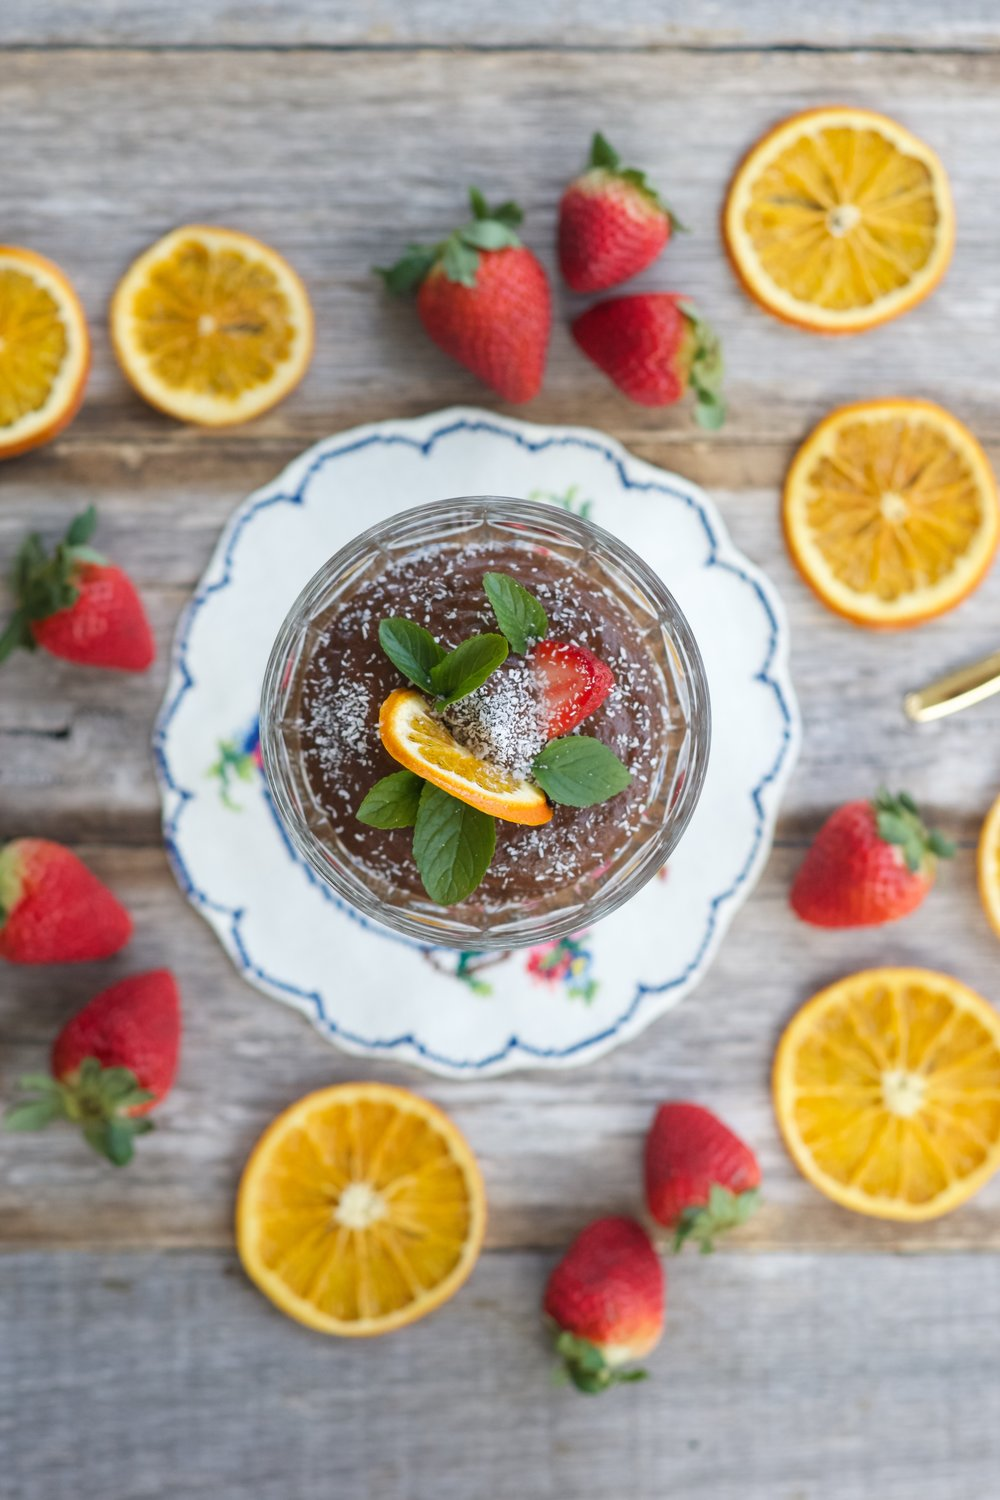 Healthy Minty Chocolate Mousse